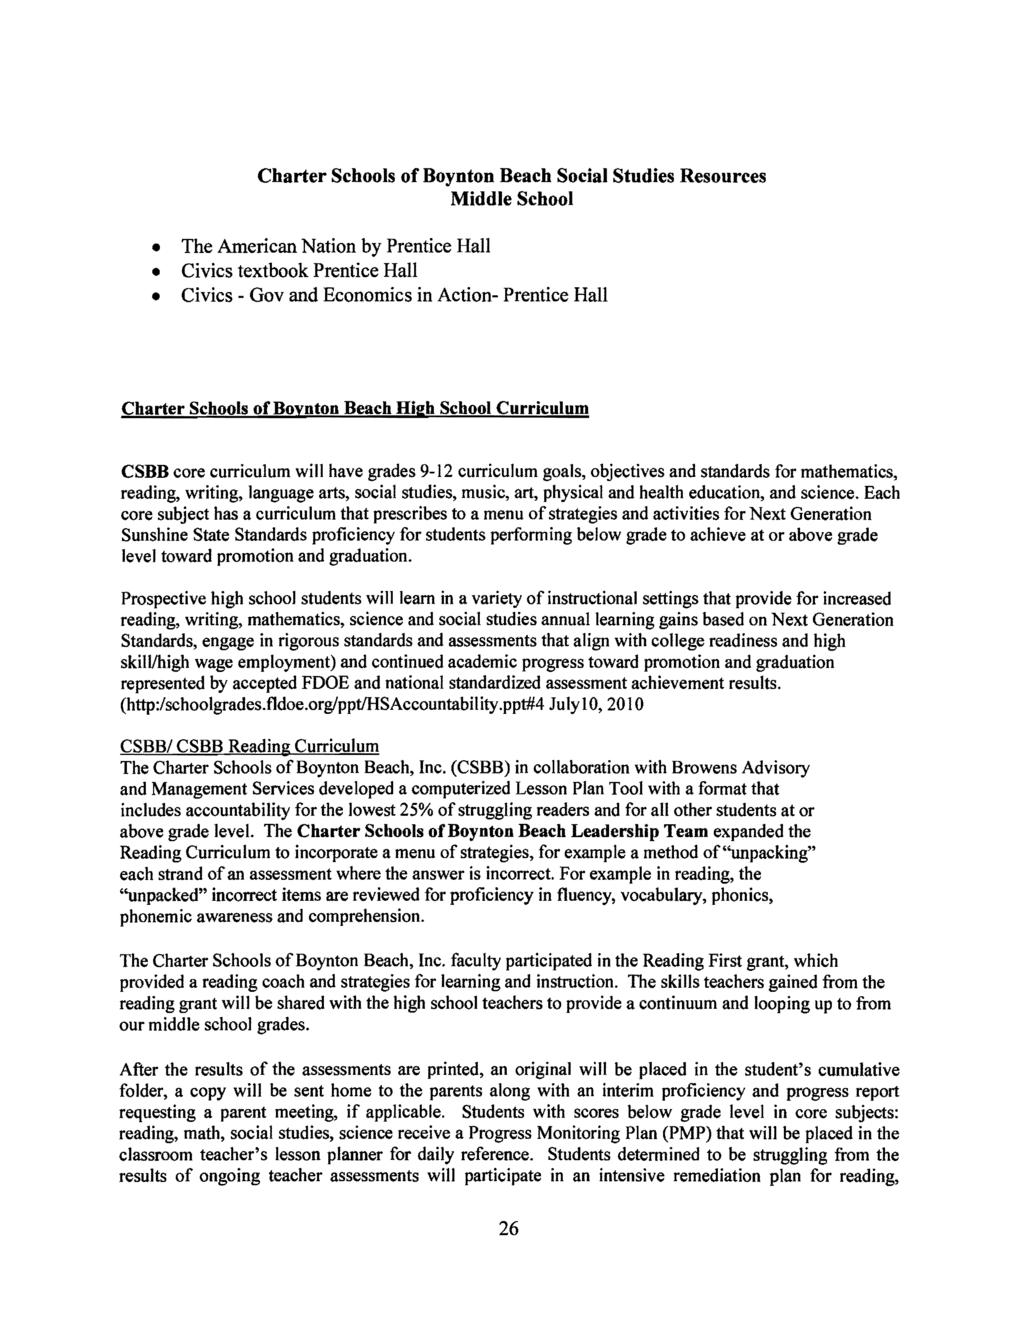 CHARTER SCHOOLS OF BOYNTON BEACH K-12 Authored by Pamela B